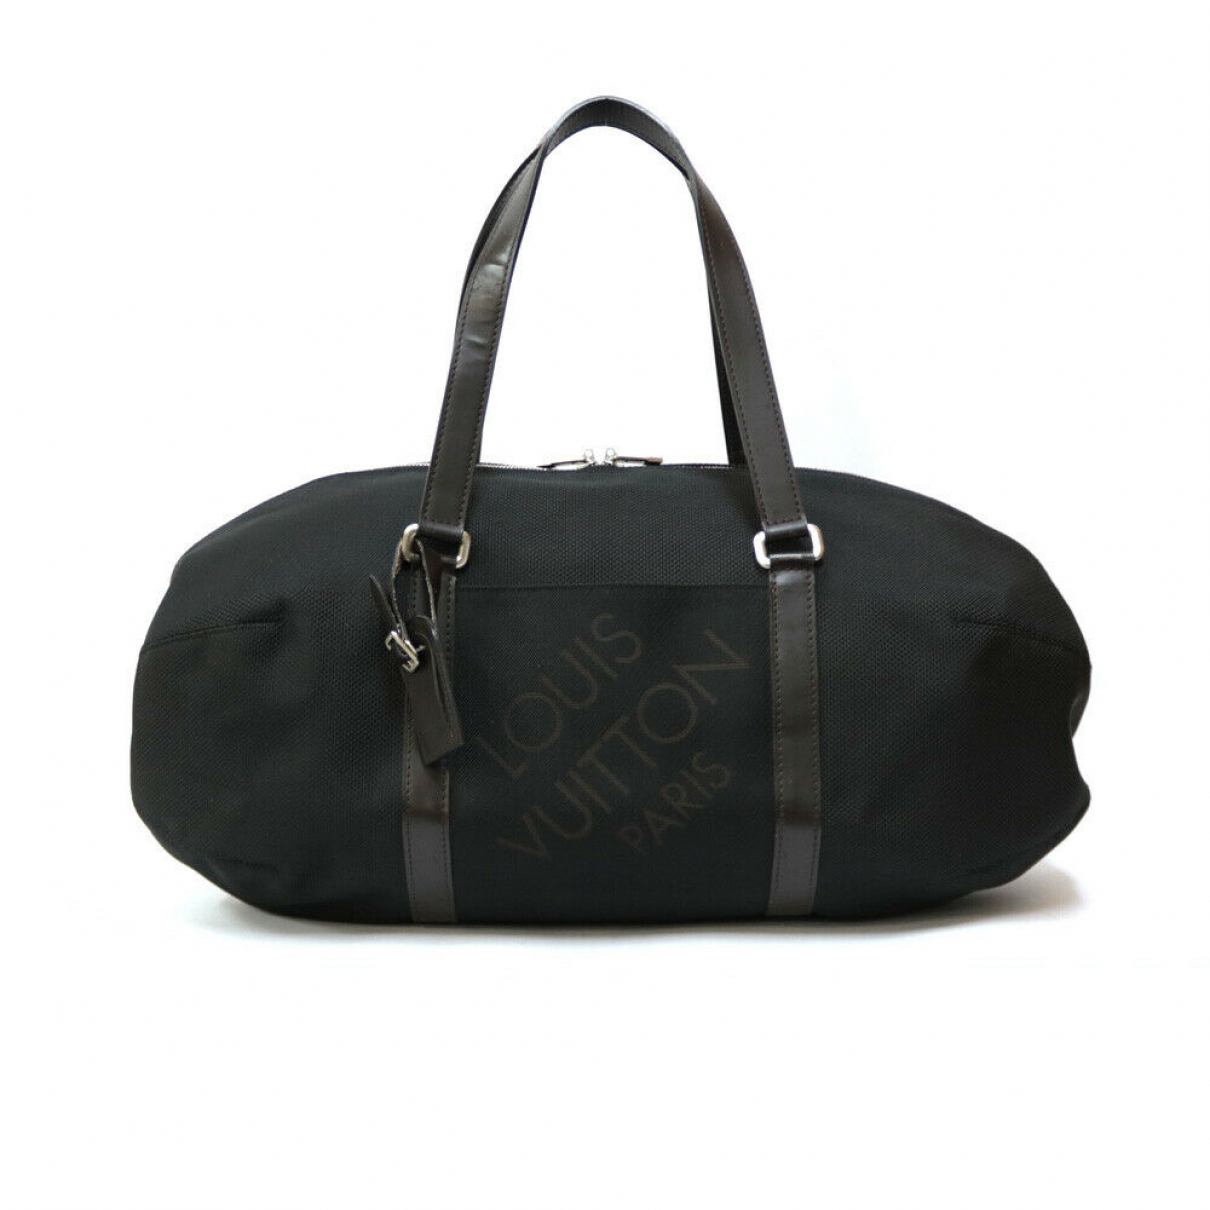 Louis Vuitton N Denim - Jeans Travel bag for Women N